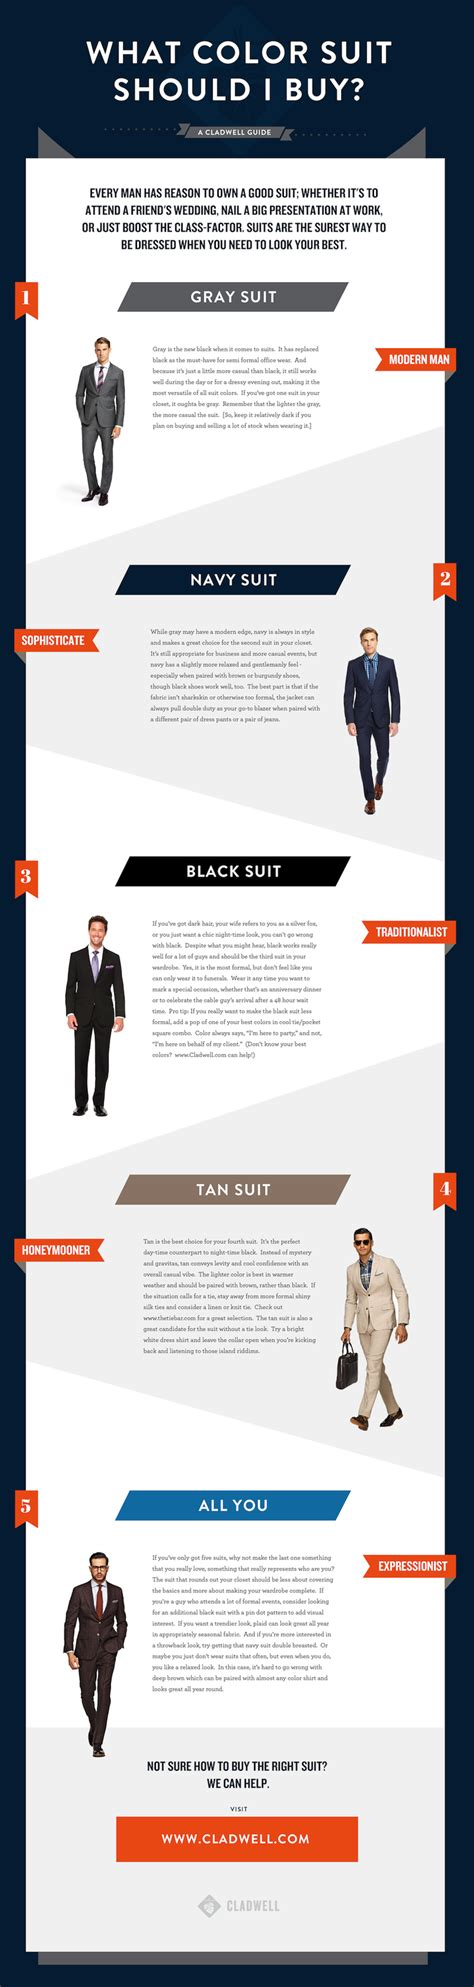 suit color guide what color suit should i buy s suit coloring guide